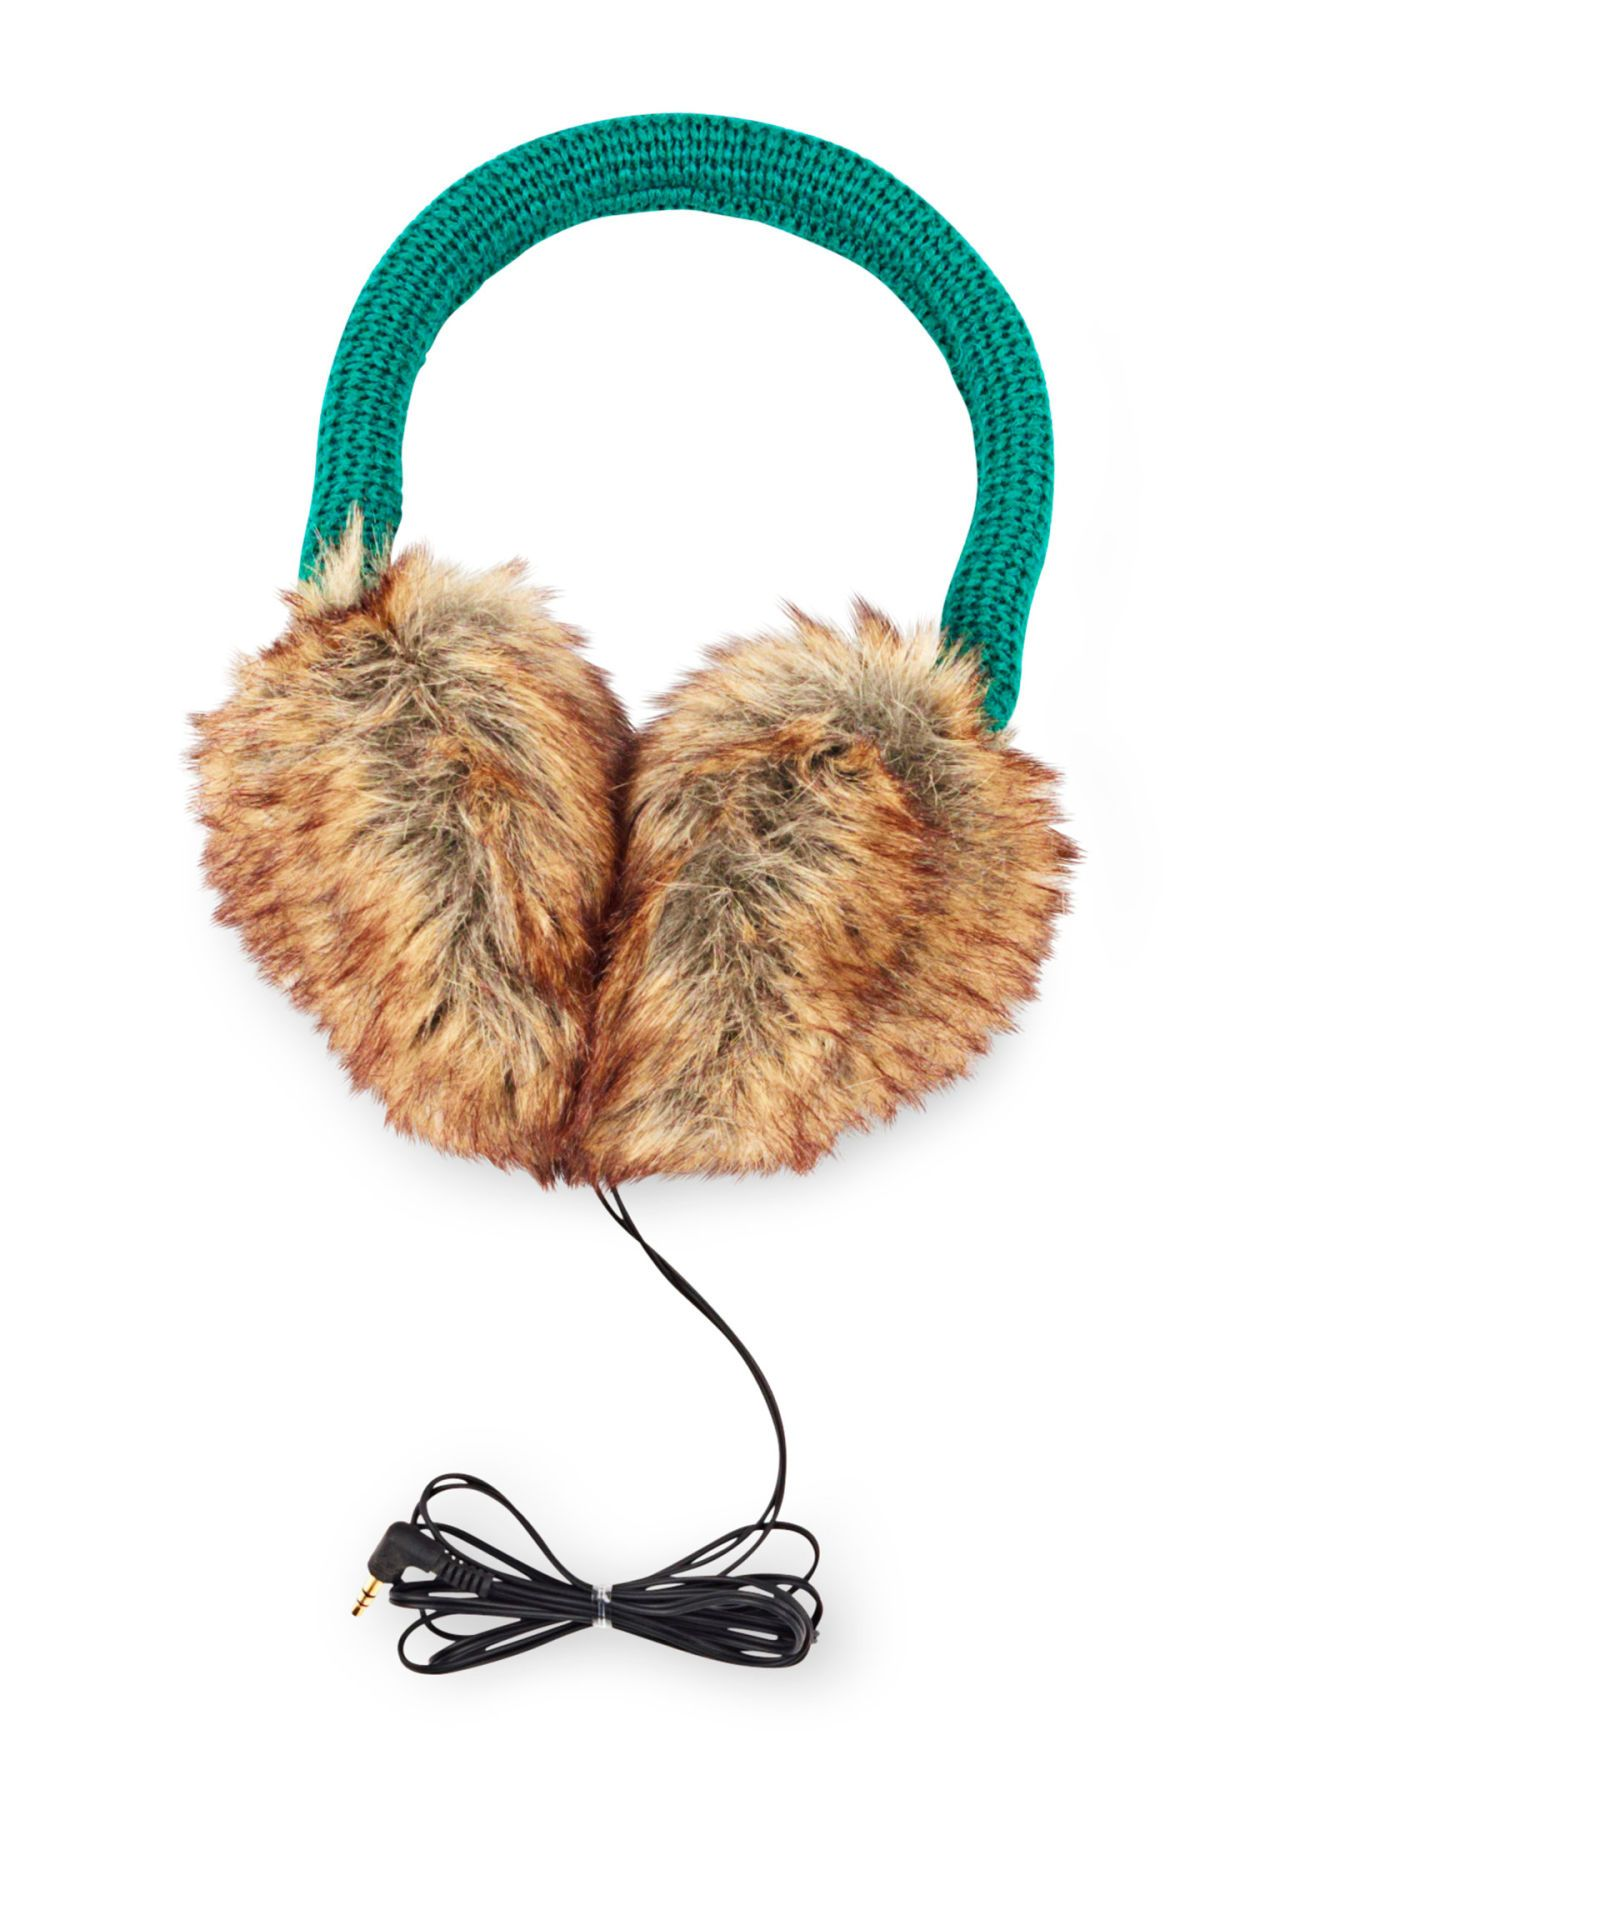 echo design earmuffs